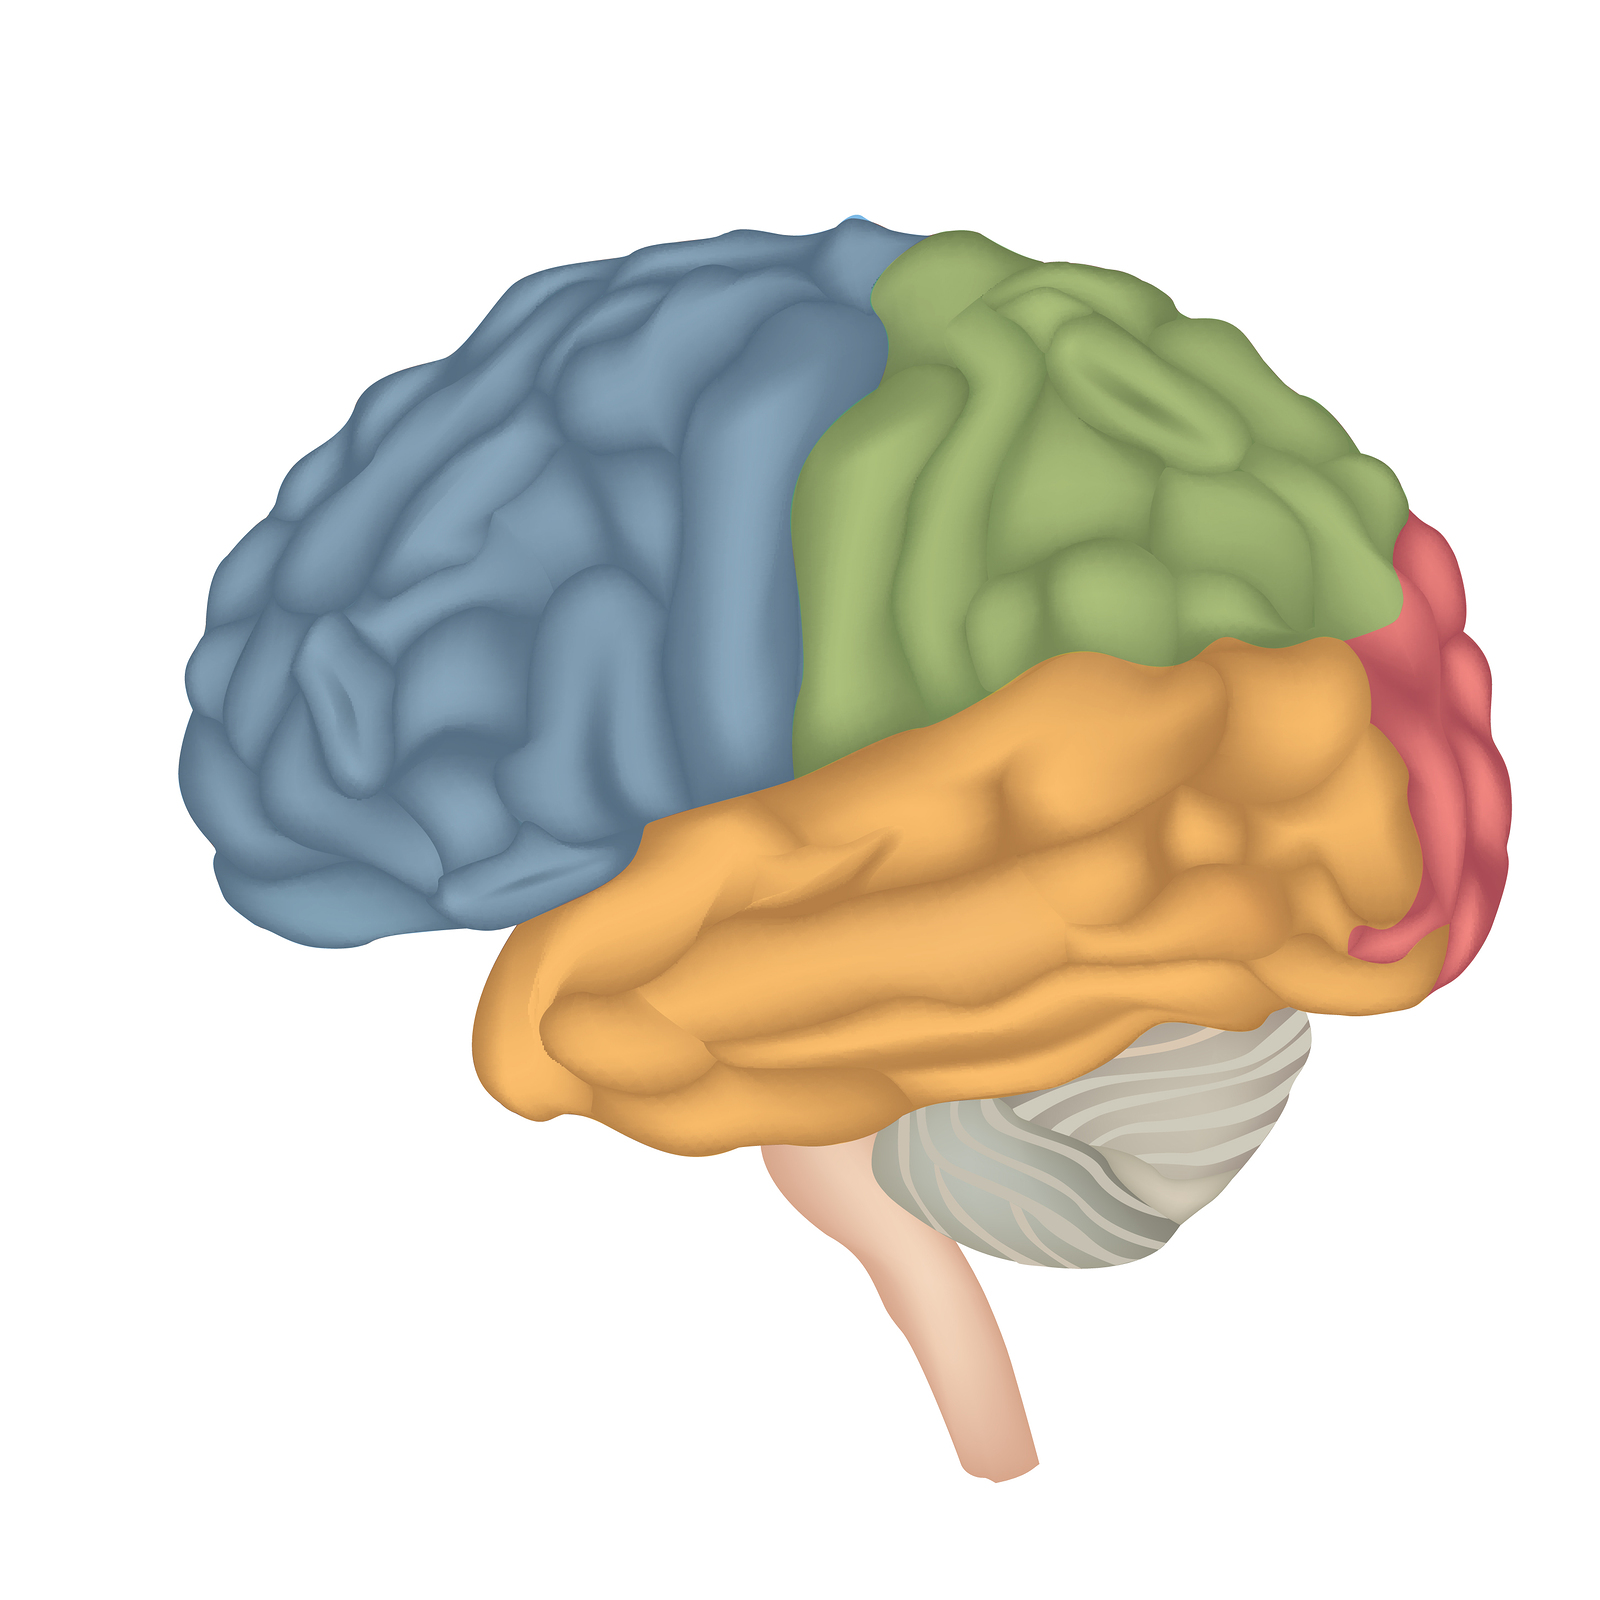 anatomy of a brain as part of a article on anatomy of a real estate offer